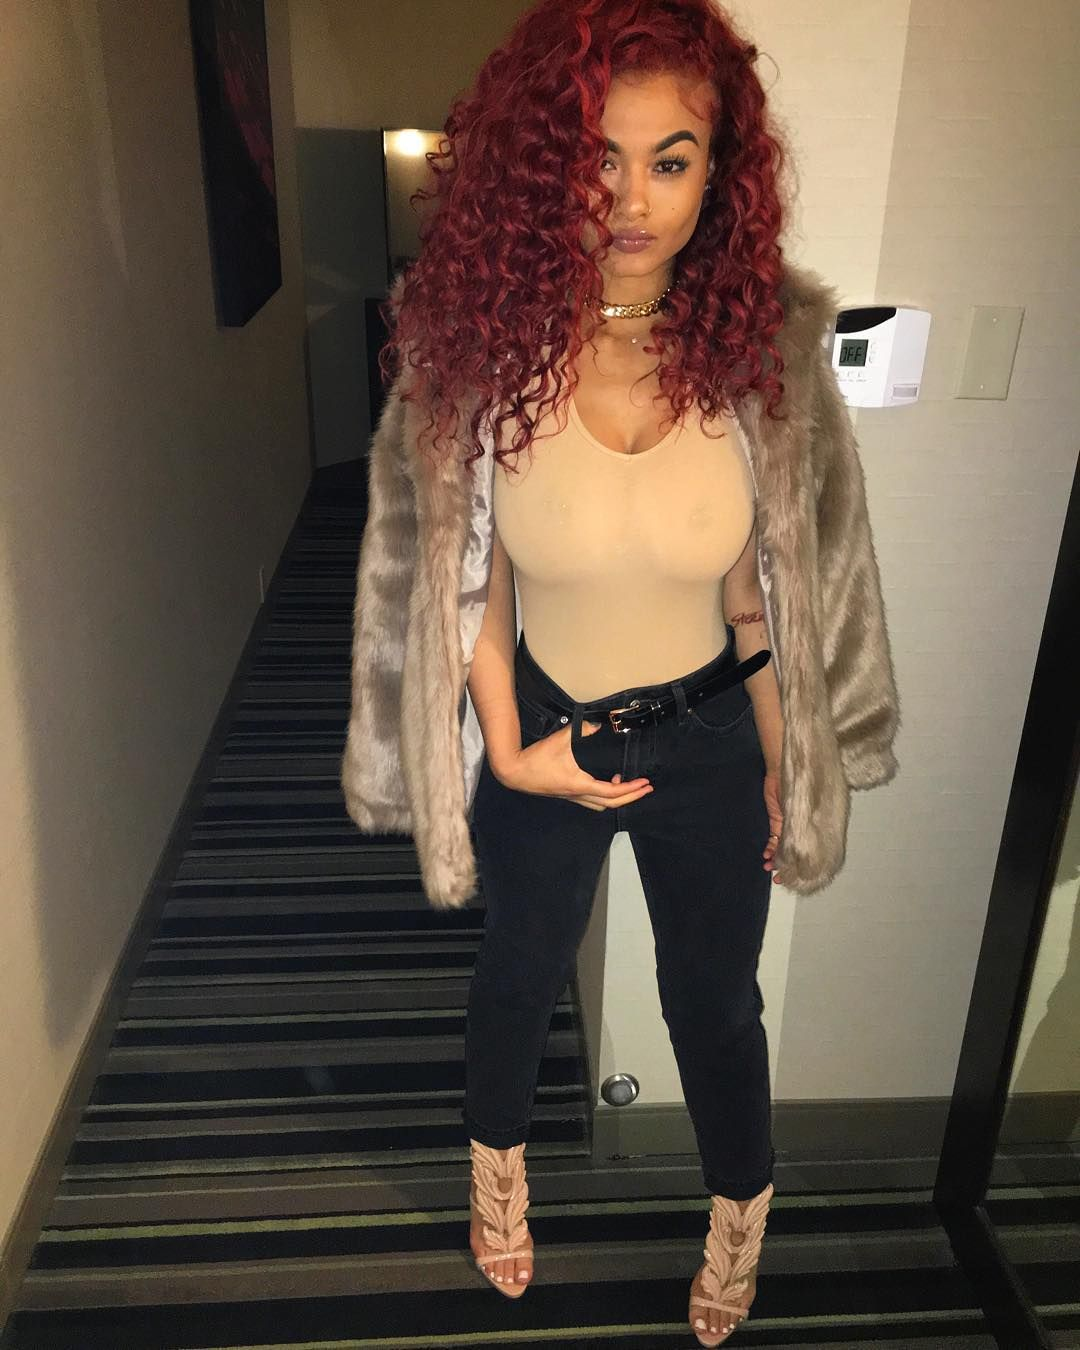 Cleavage India Westbrooks nude (79 foto and video), Topless, Fappening, Selfie, braless 2018